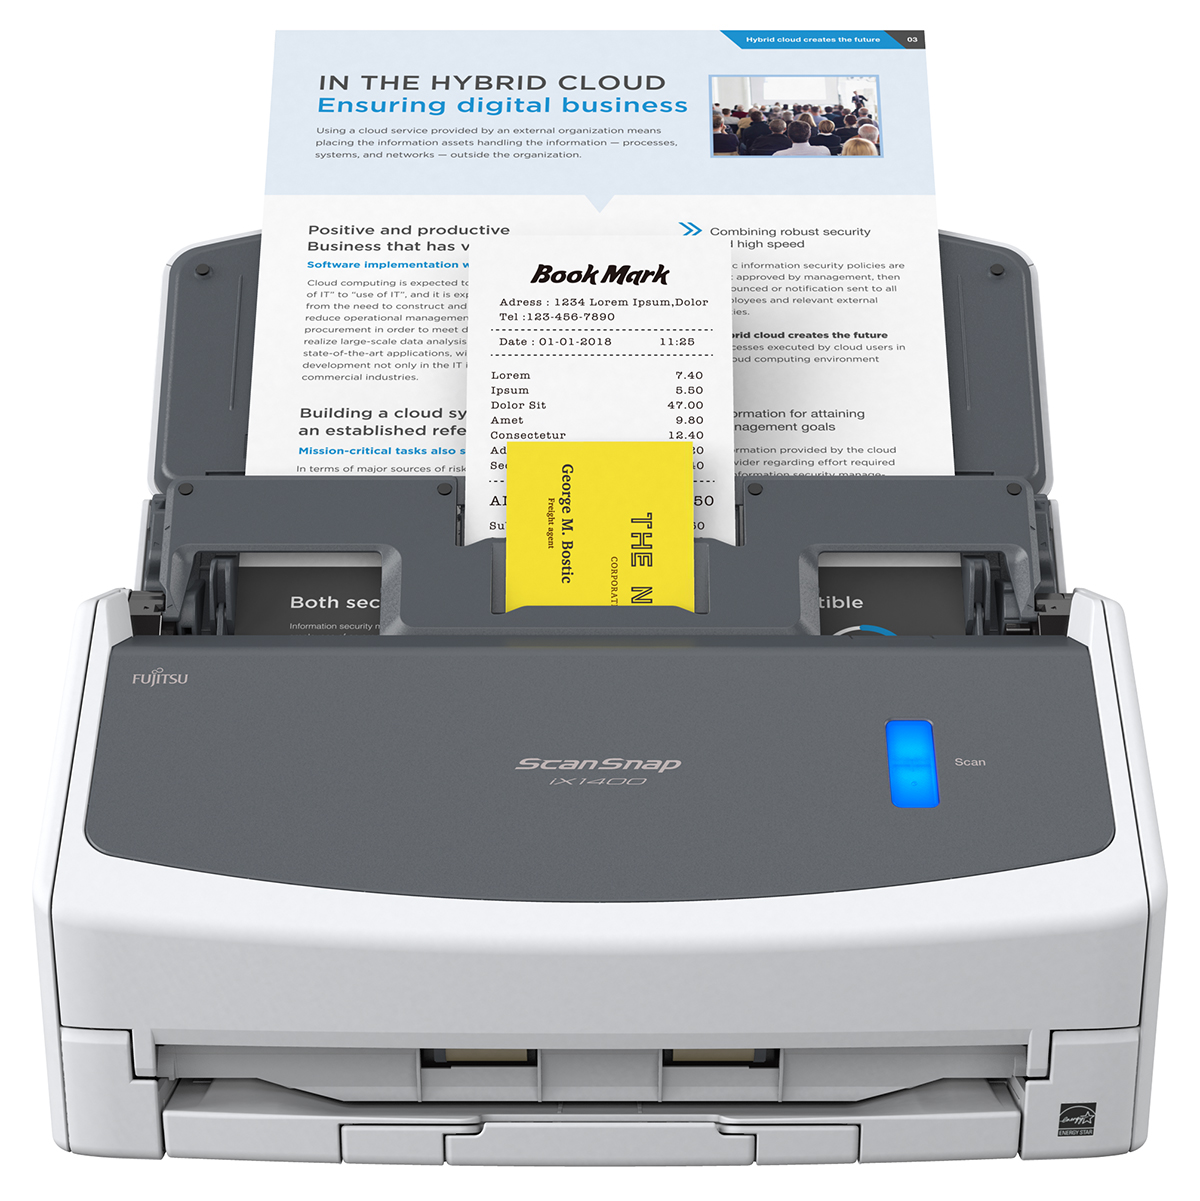 Fujitsu ScanSnap iX1400 A4 DT Workgroup Document Scanner